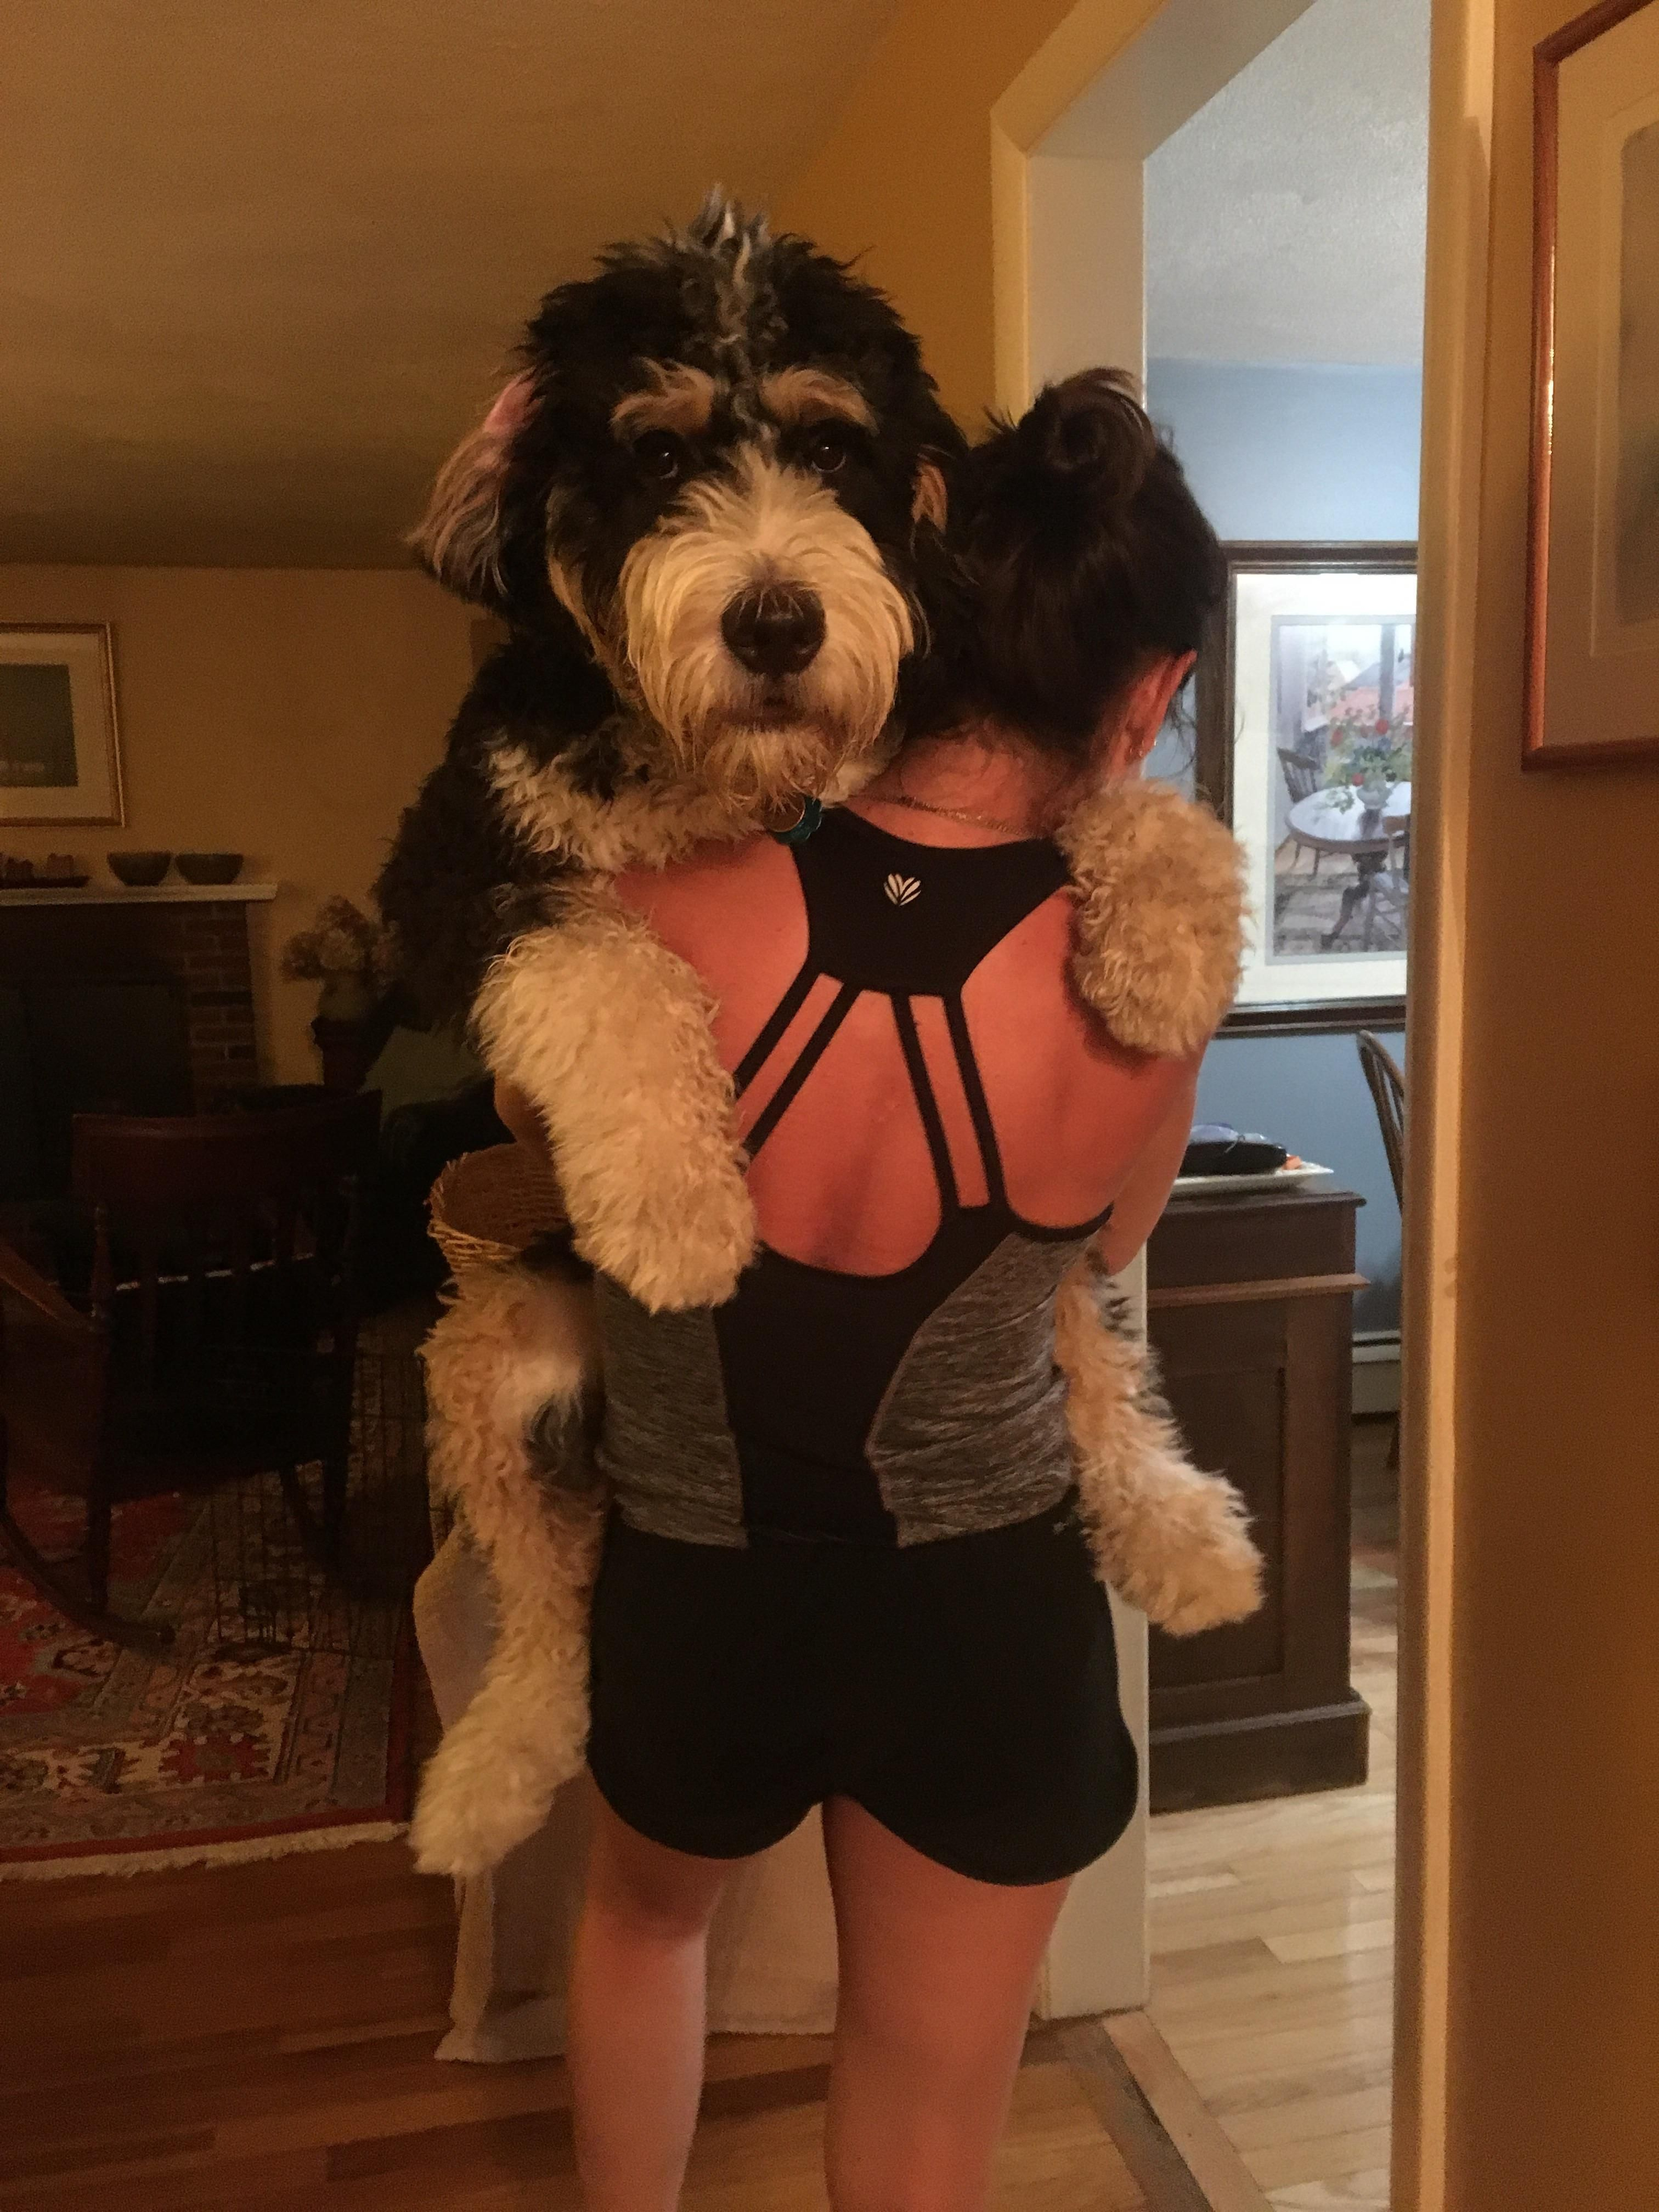 Frank Is A 7 Month Old Bernedoodle He Won T Be As Big As A Bernese Mountain Dog Because Of The Poodle Mix My Niece J Bernedoodle Dog Crossbreeds Poodle Mix